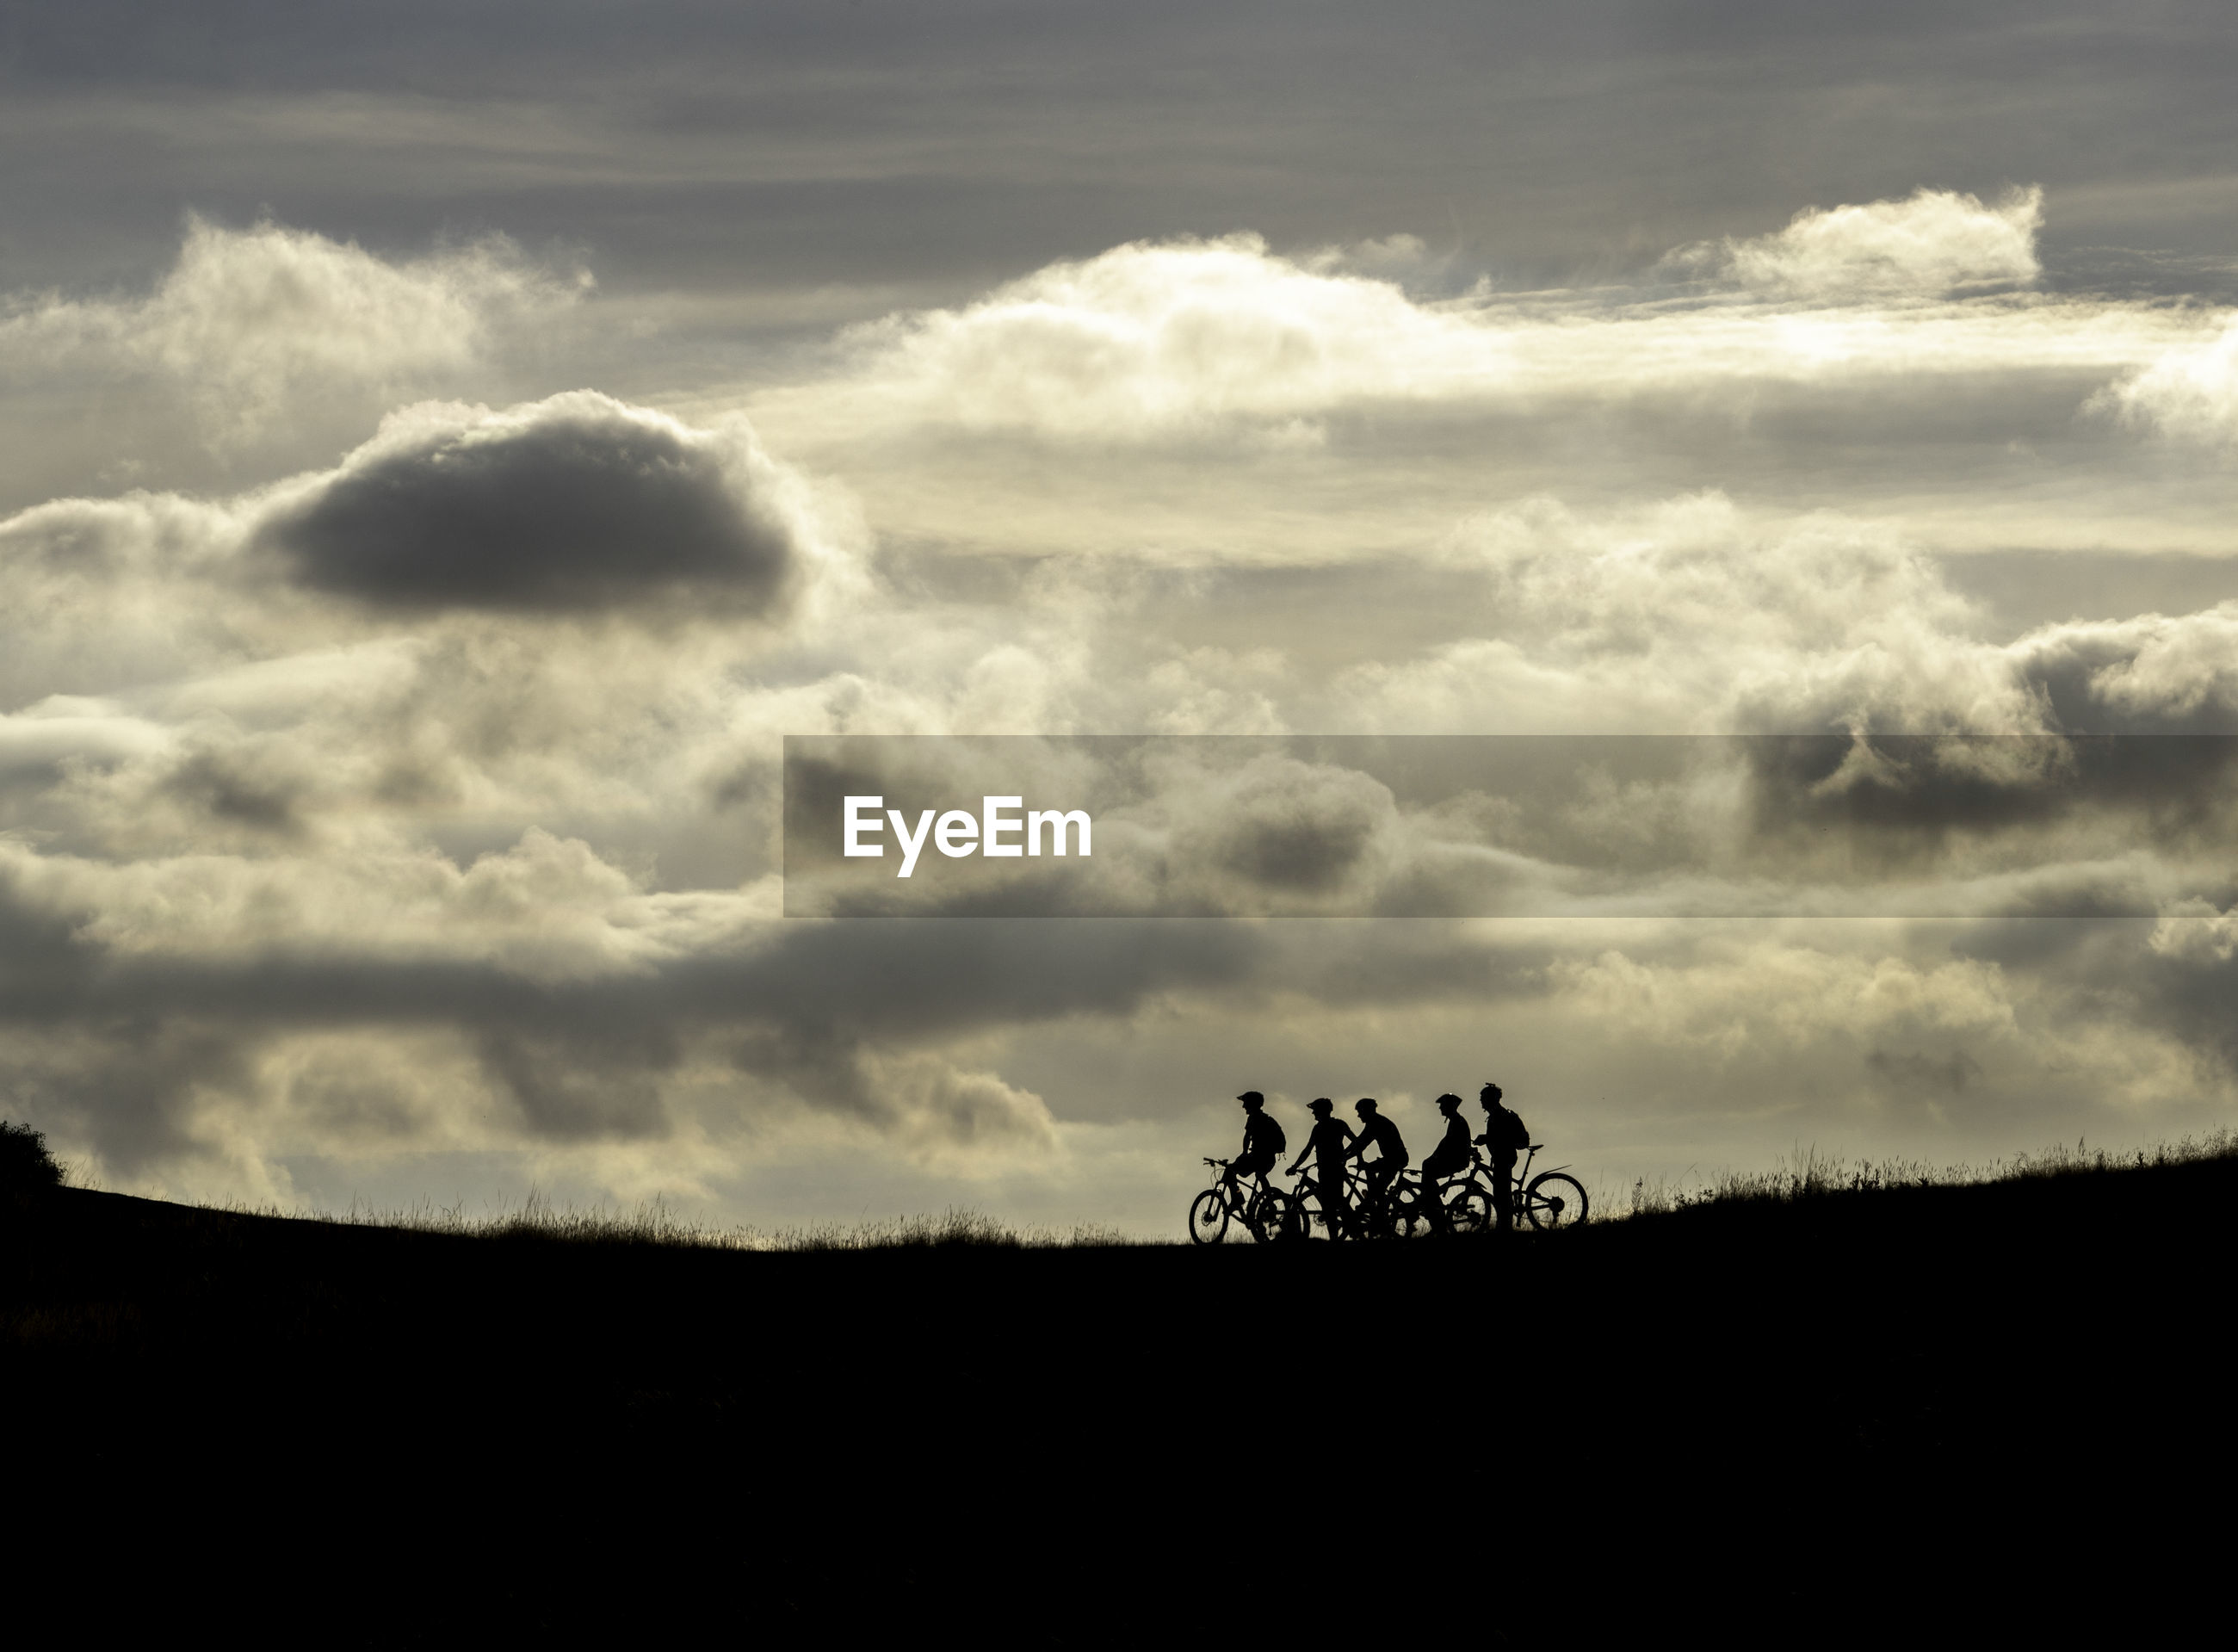 Silhouette people riding bicycles on field against cloudy sky during sunset